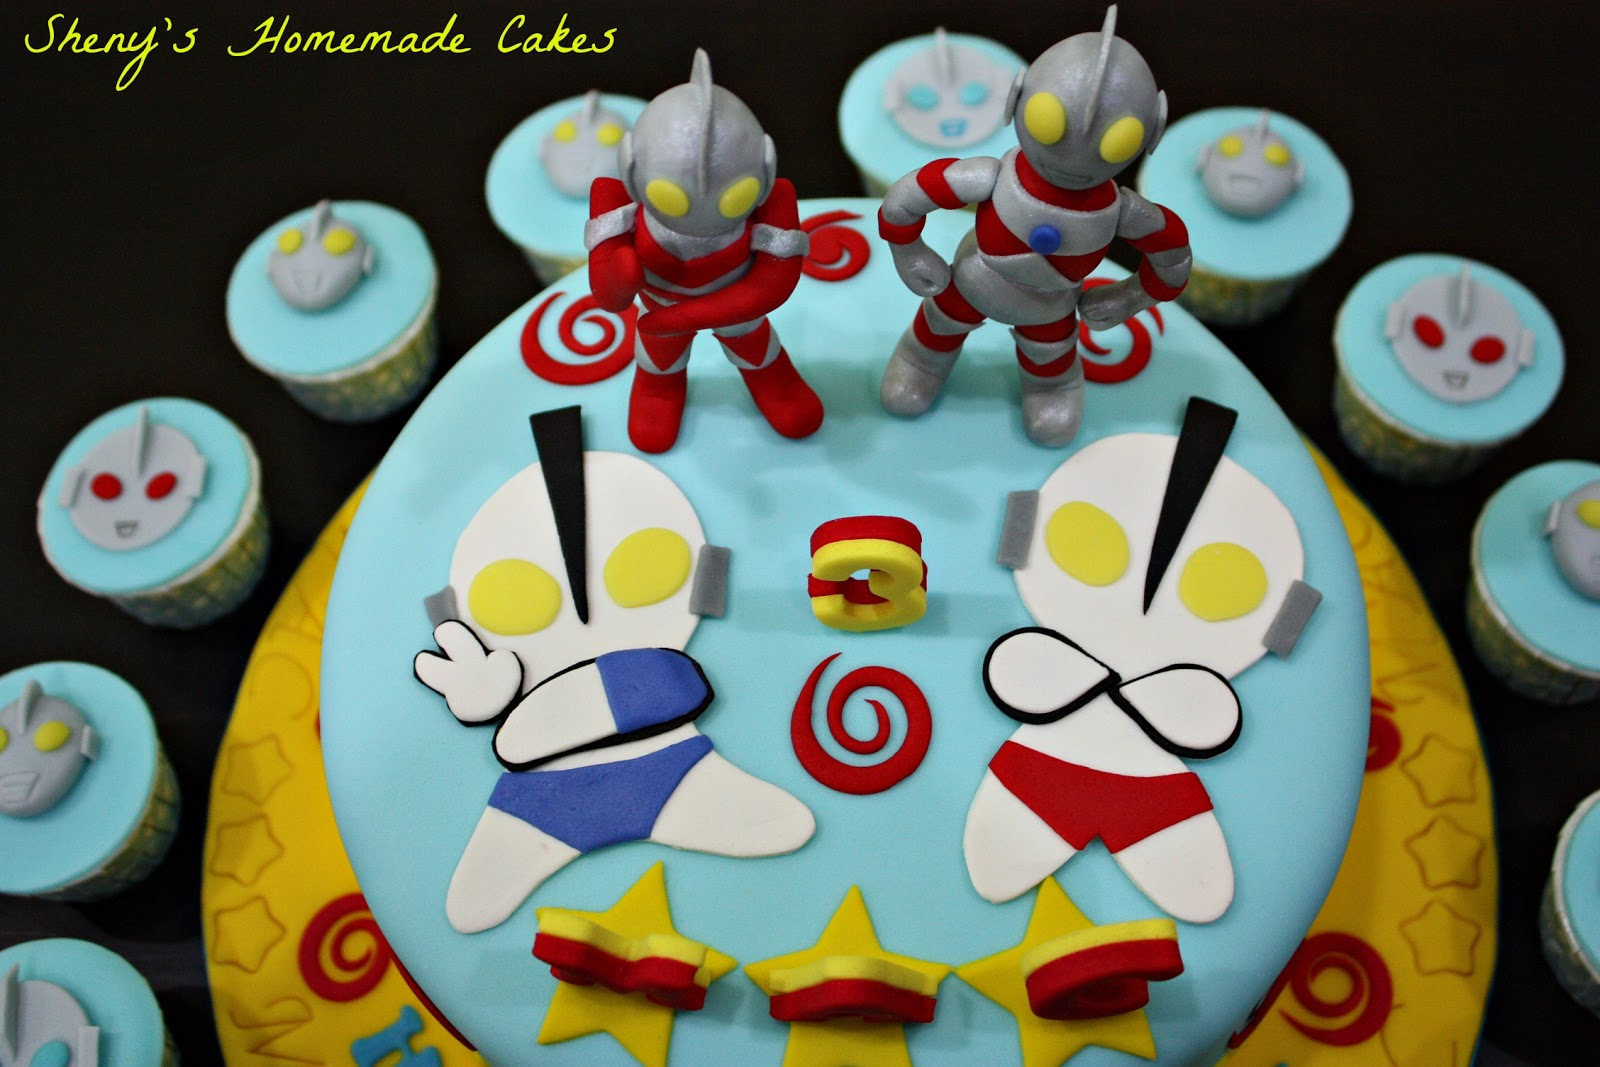 Cake Ultraman Design Perfectend for